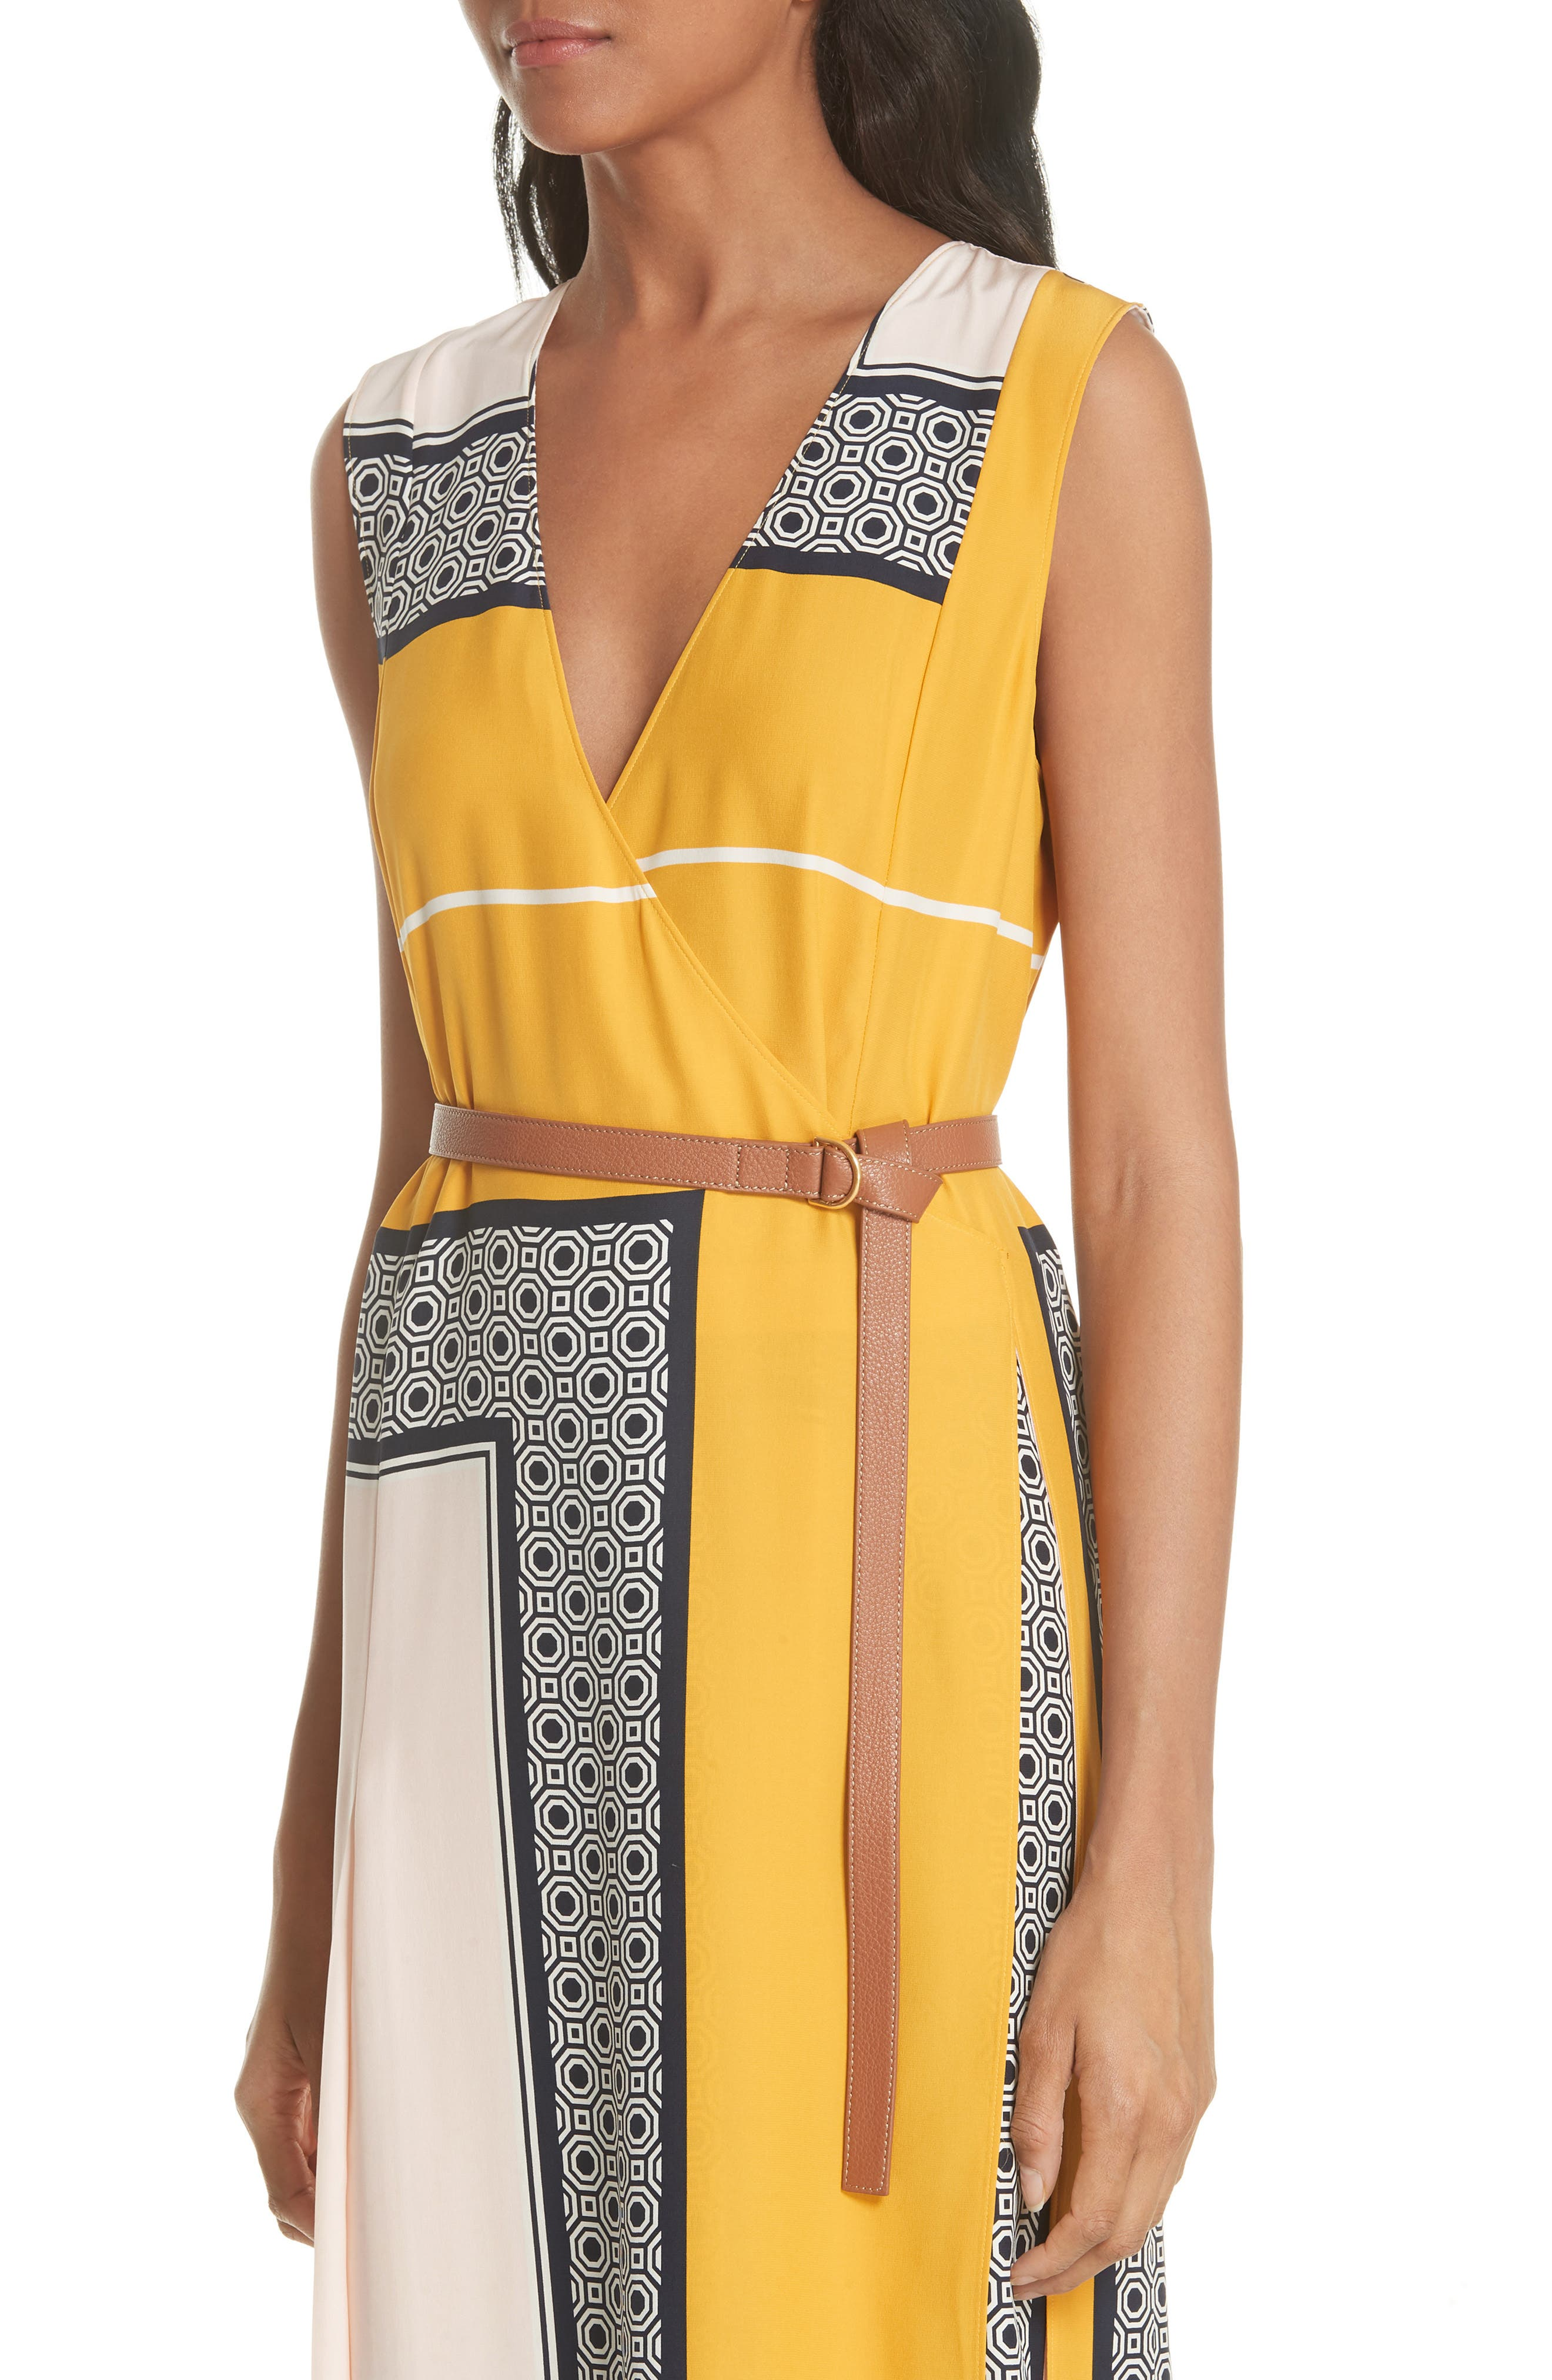 Clarice Belted Silk Wrap Dress,                             Alternate thumbnail 4, color,                             658